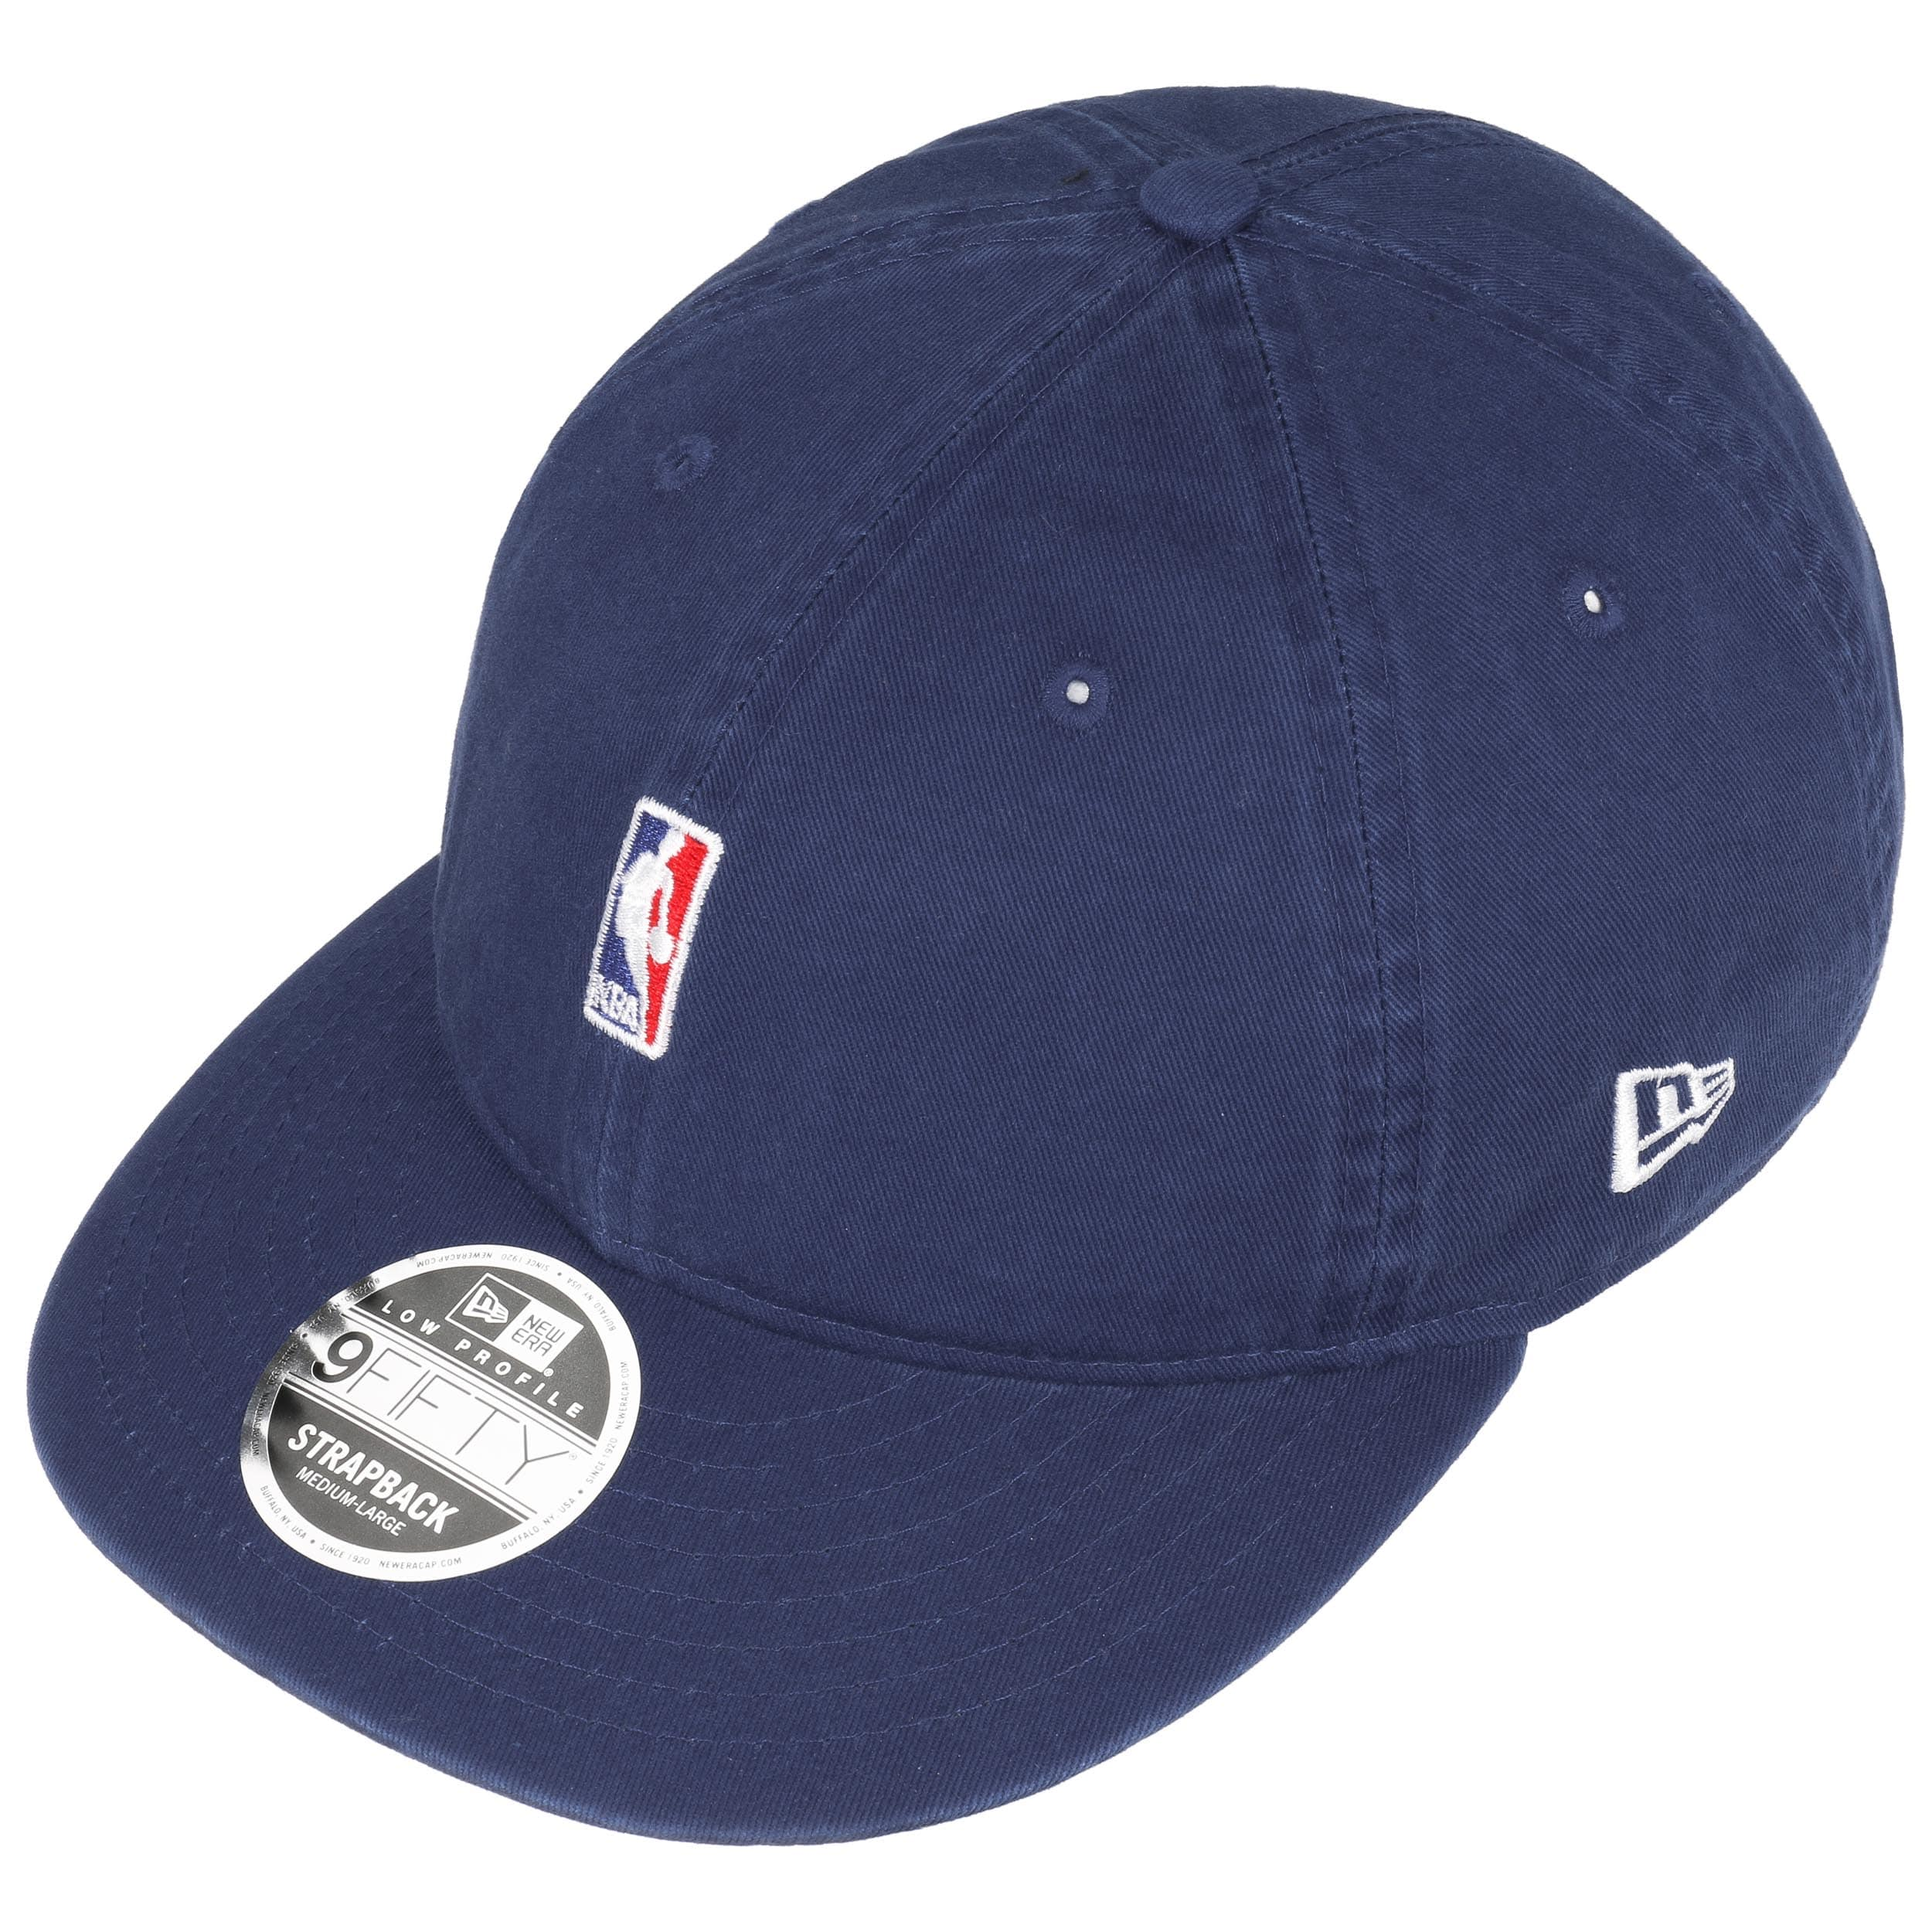 ... 9Fifty Low Crown NBA Logo Cap by New Era - royal-blue 1 ... 247f1e7487d